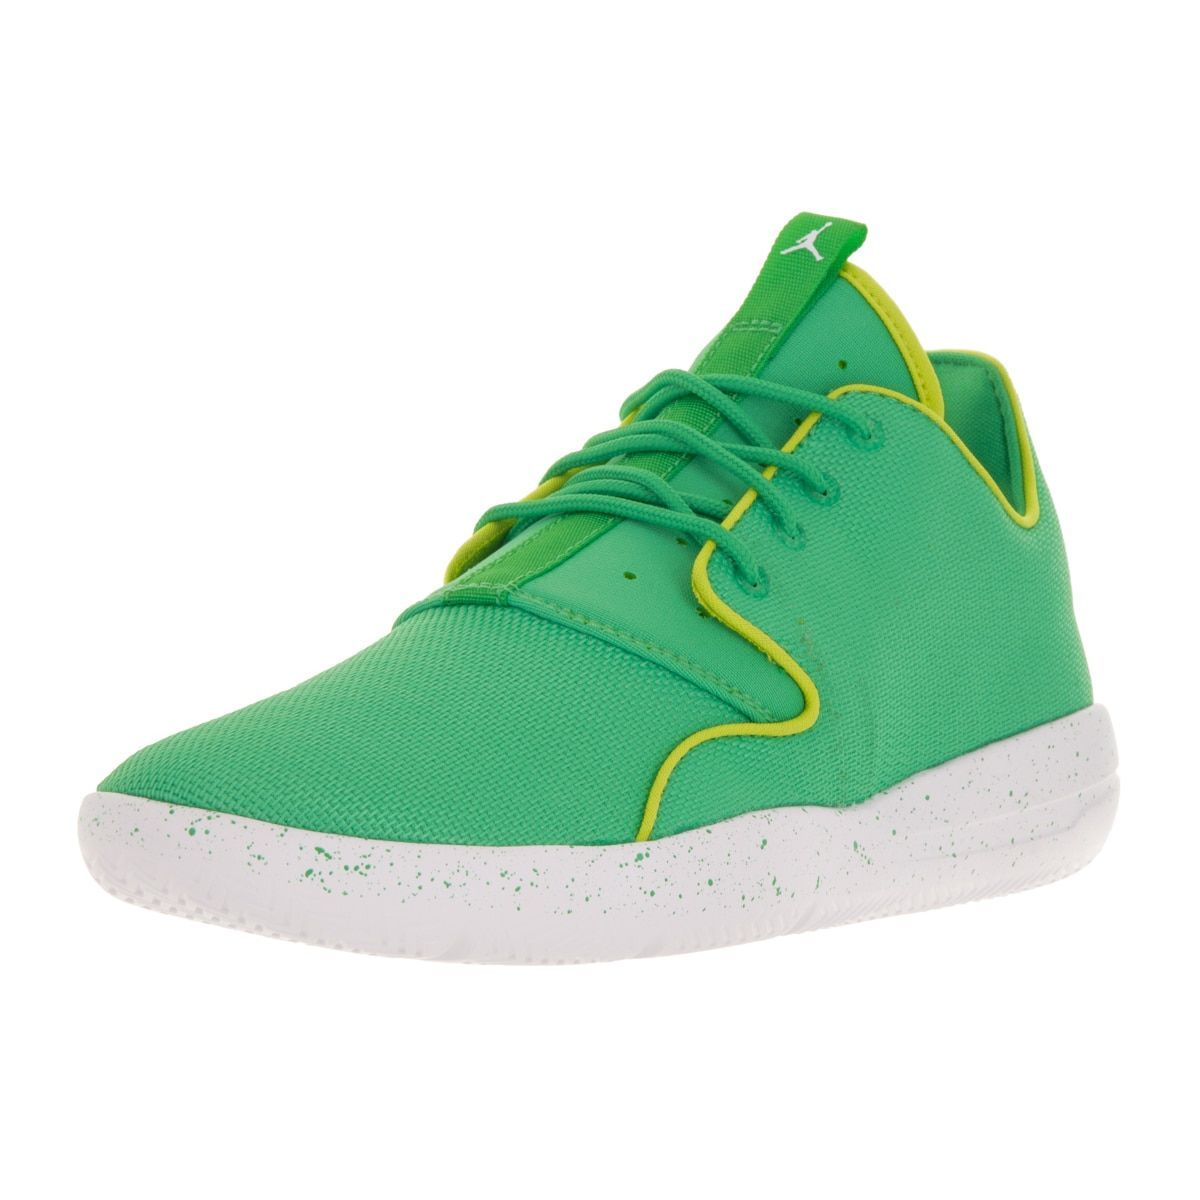 new style 2adfa 91d44 Nike Jordan Kids  Jordan Eclipse Gamma and Cyber White Synthetic Running  Shoes